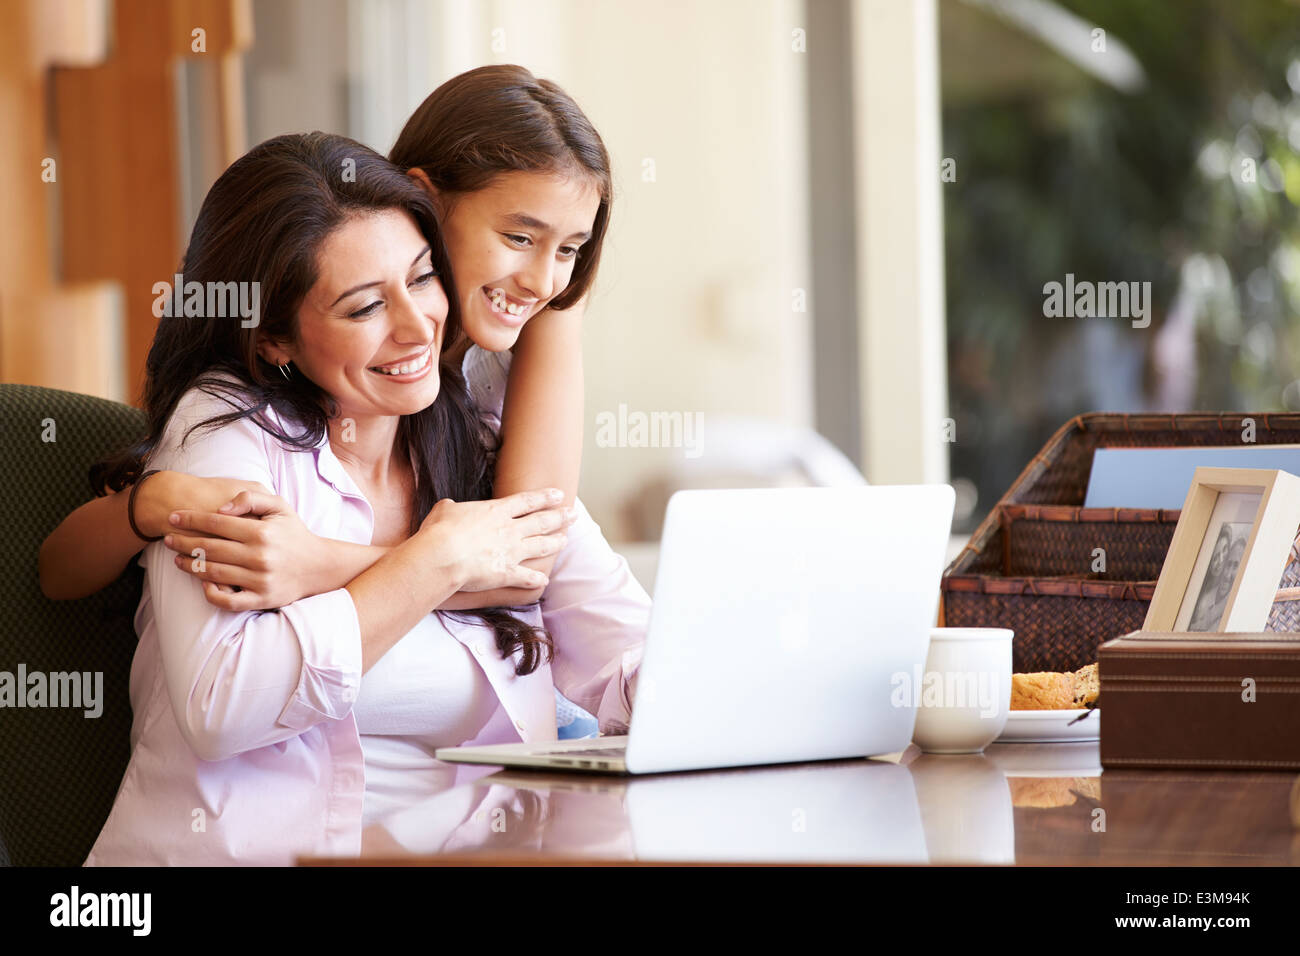 Mother And Teenage Daughter Looking At Laptop Together - Stock Image